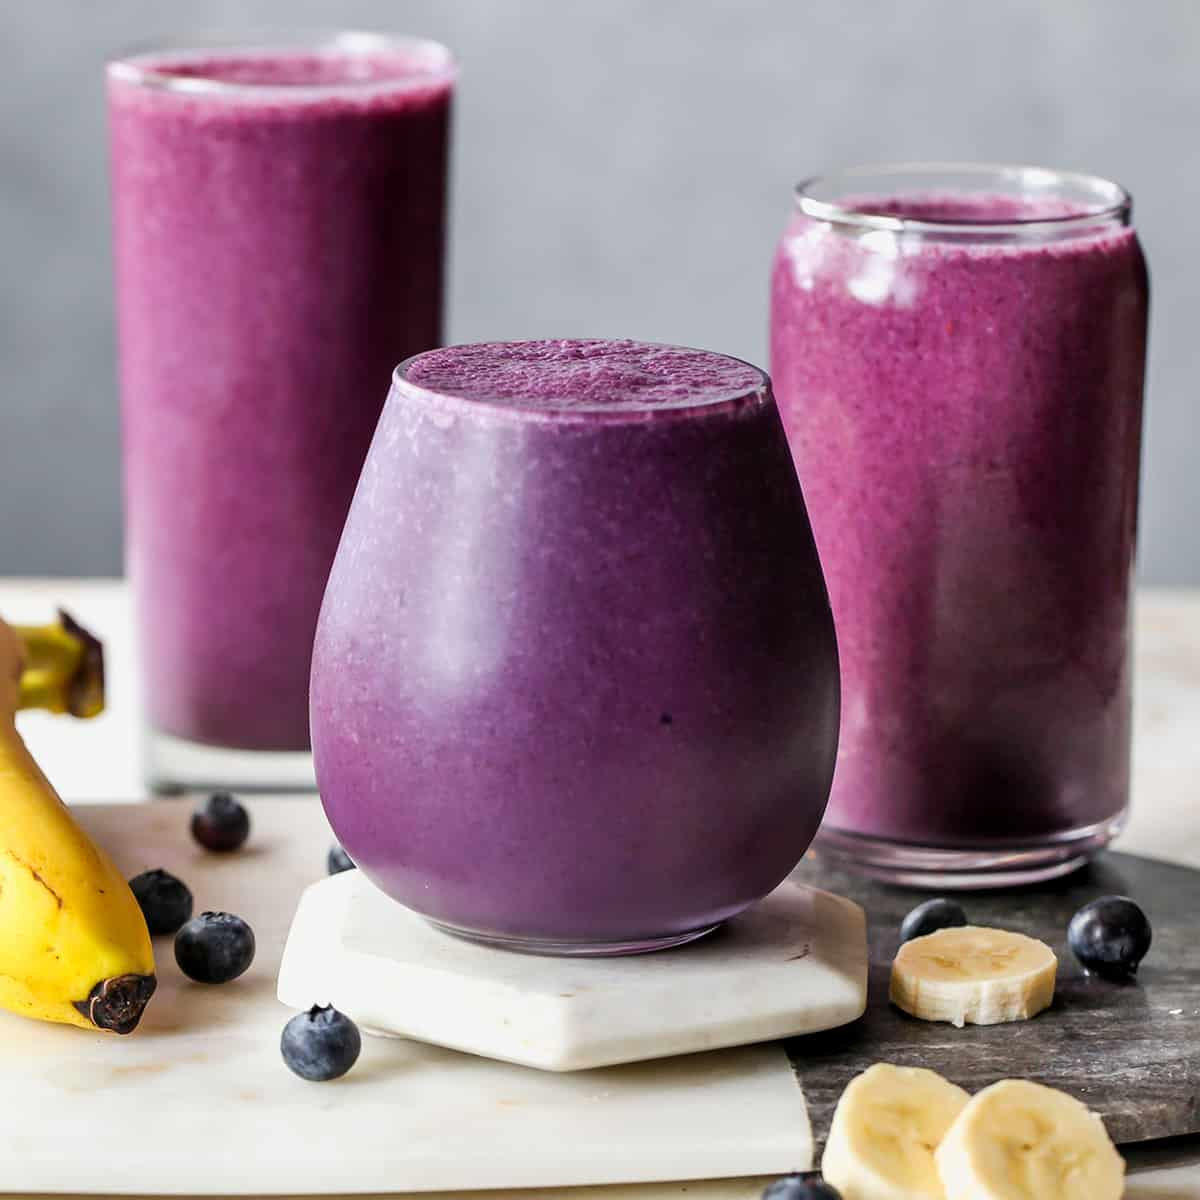 front view of three glasses filled with Blueberry Smoothie with bananas and blueberries around them